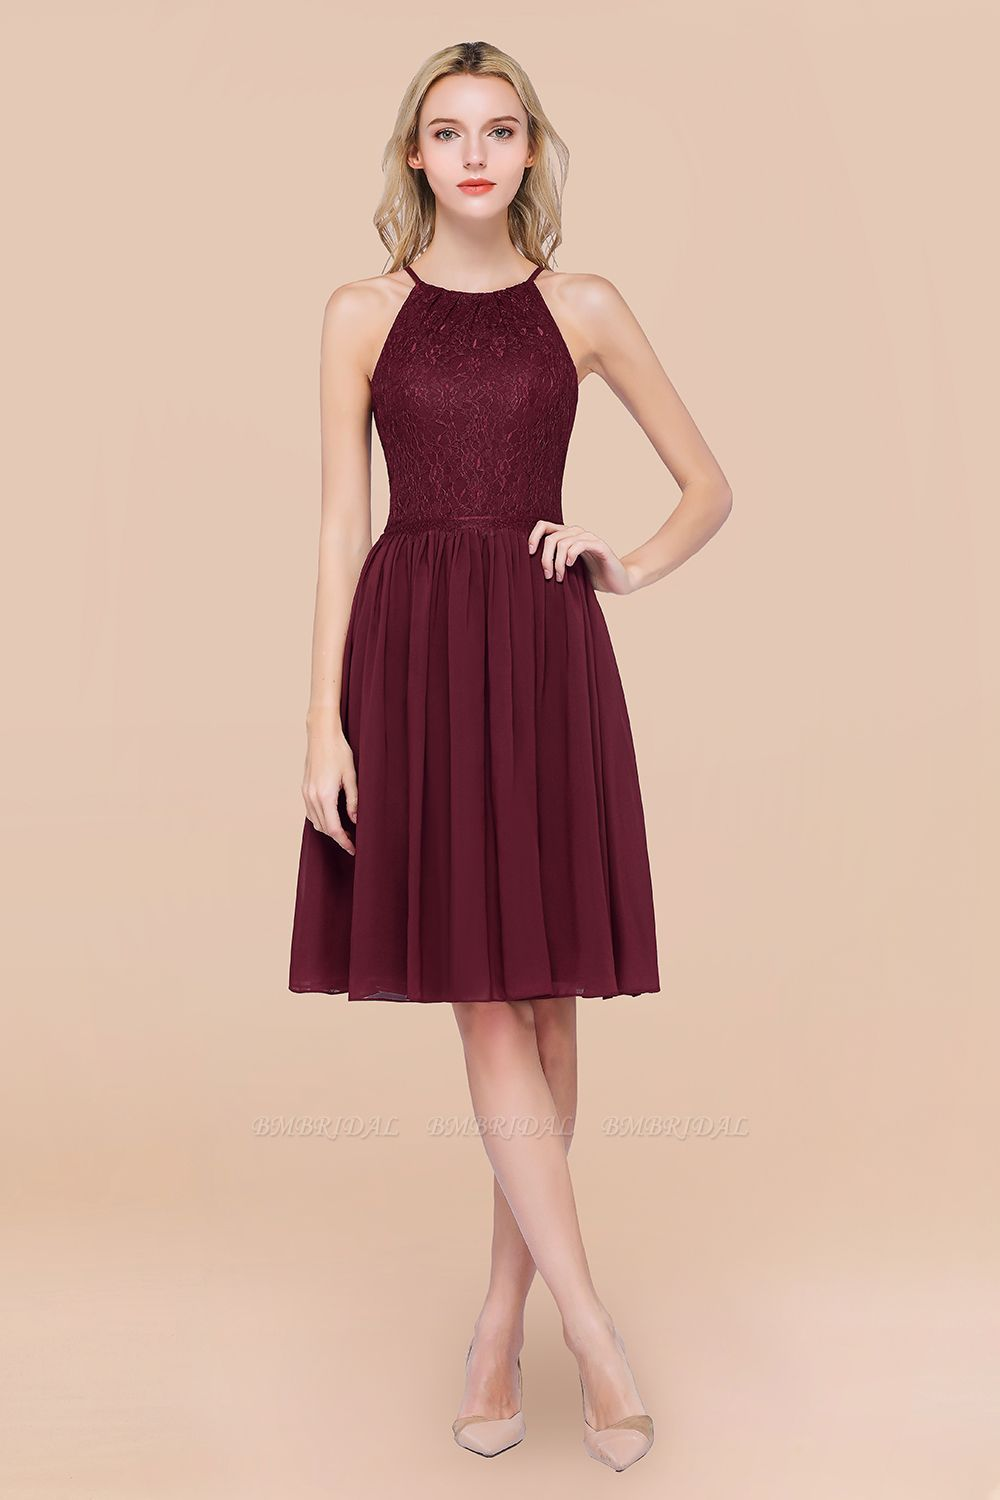 BMbridal Lovely Burgundy Lace Short Bridesmaid Dress With Spaghetti-Straps